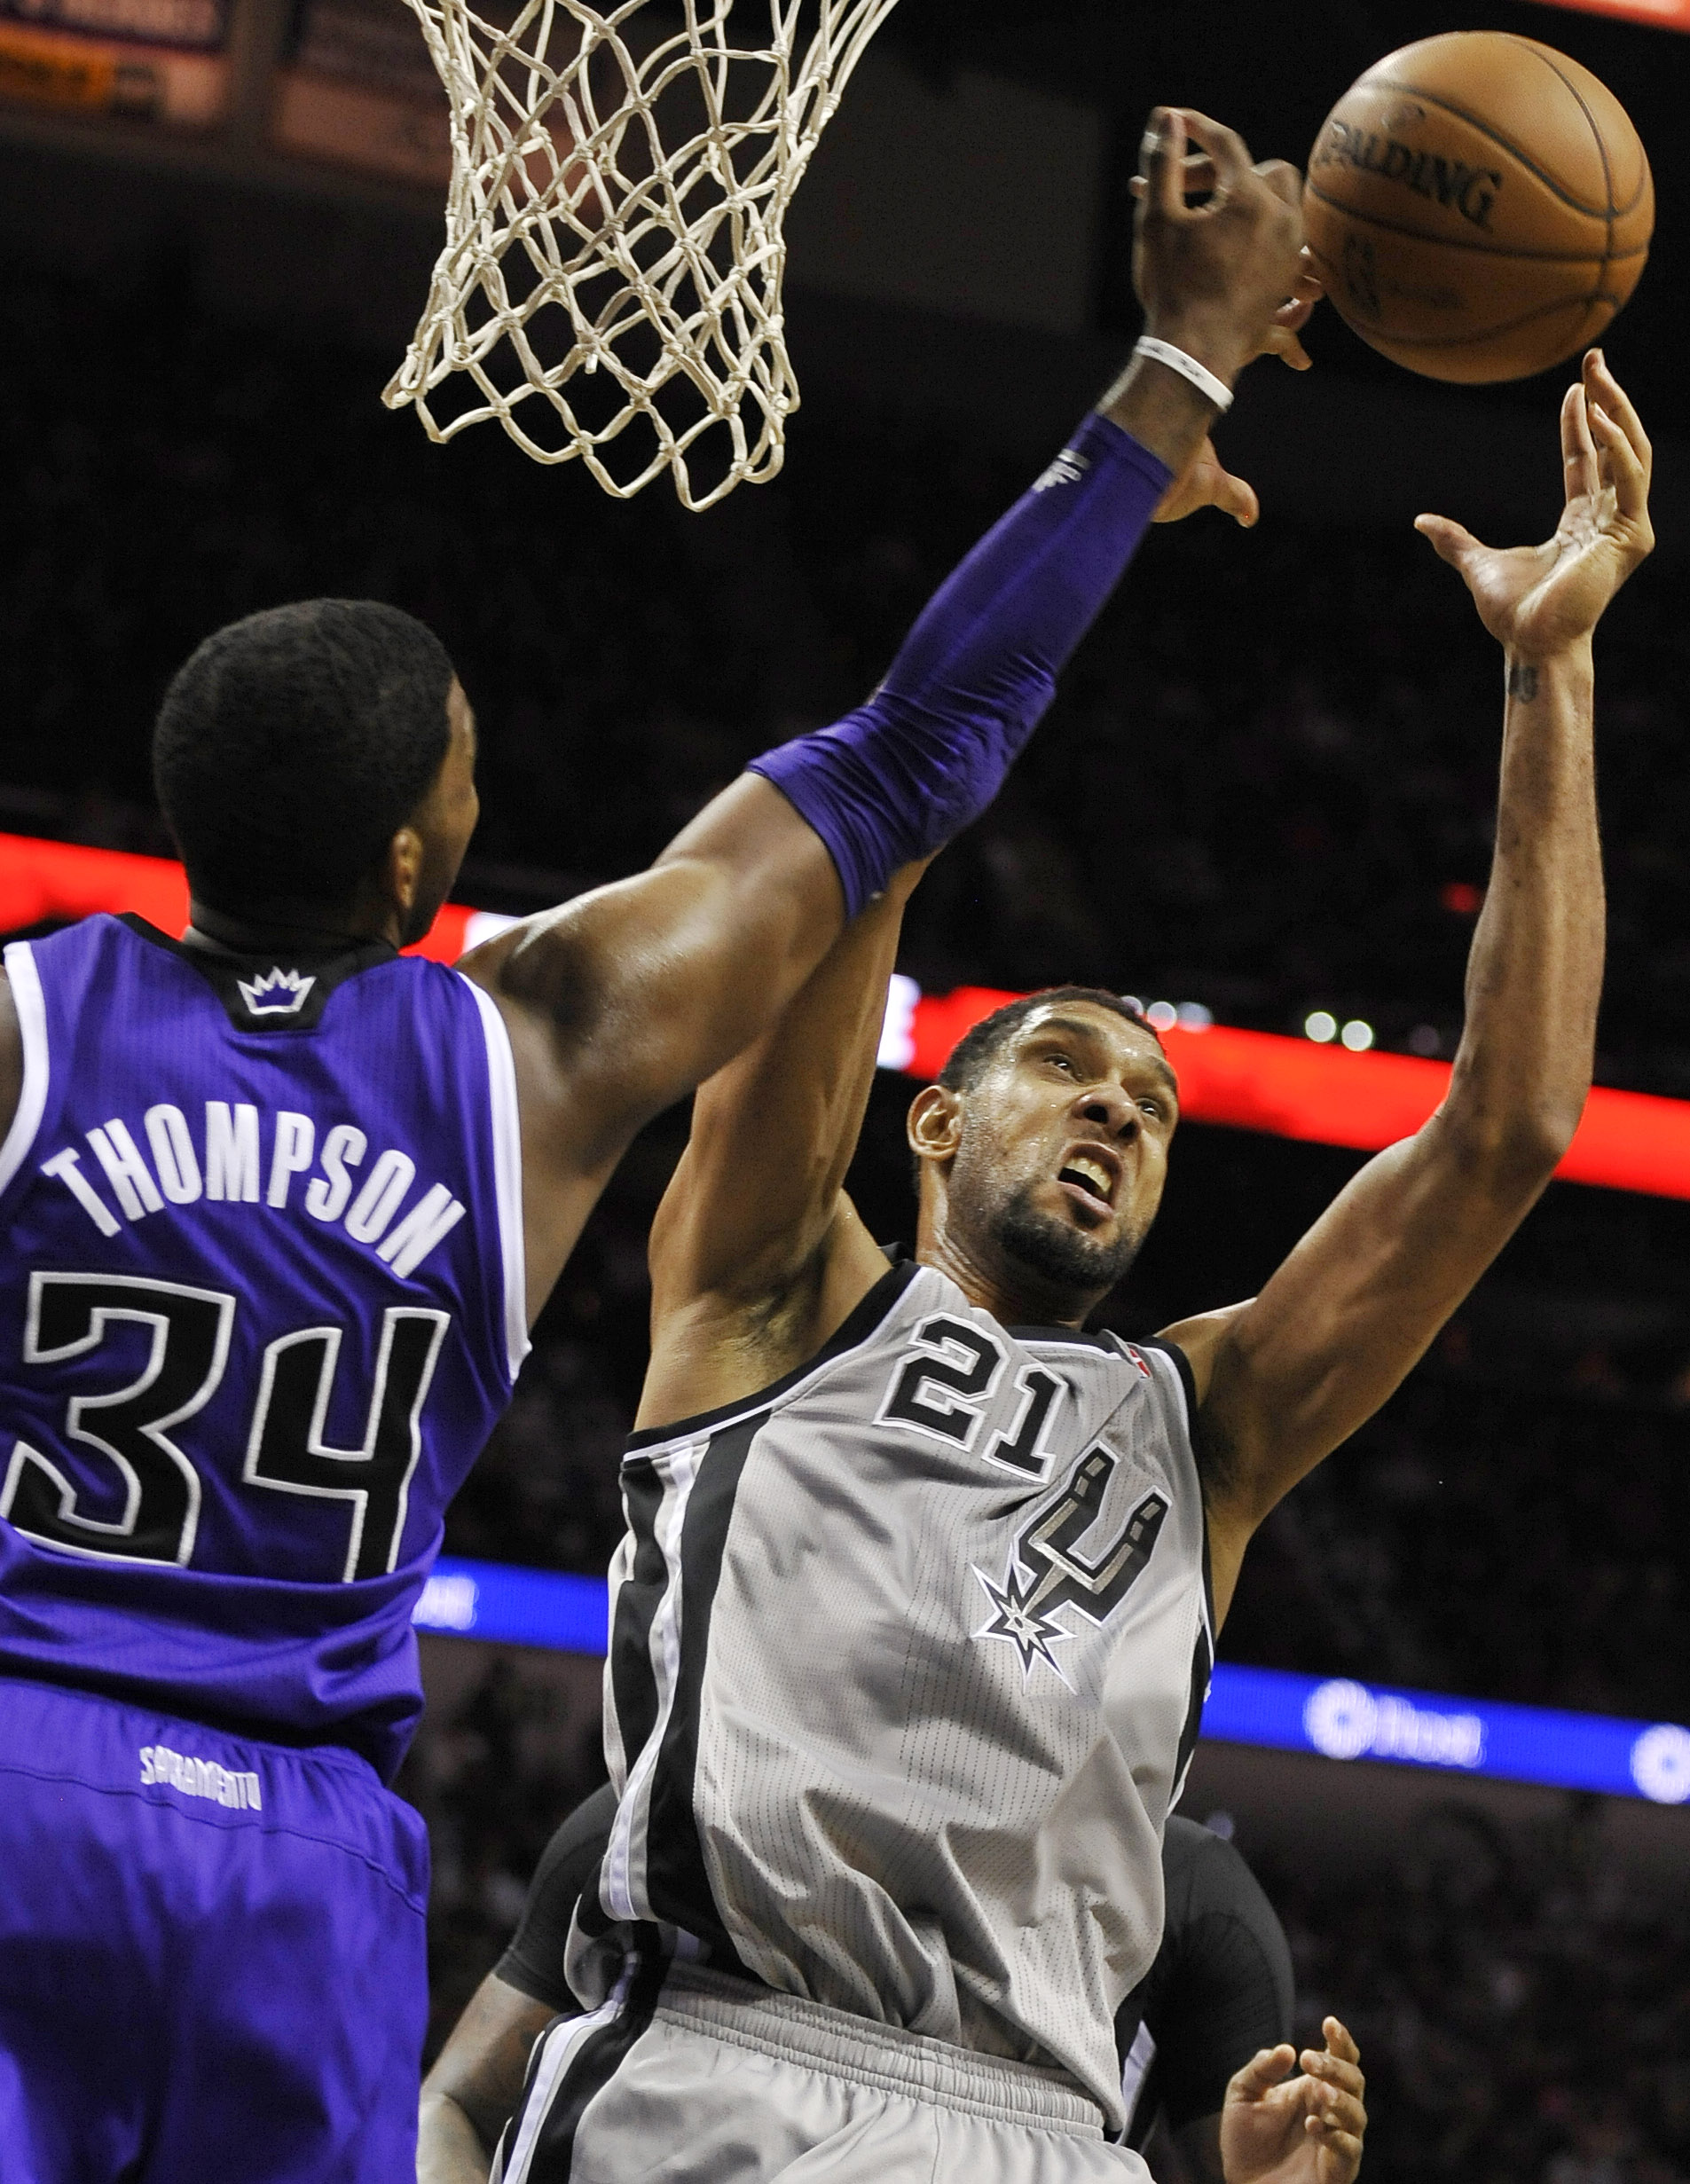 San Antonio Spurs forward Tim Duncan, right, chases a rebound against Sacramento Kings forward Jason Thompson during the second half of an NBA basketball game on Sunday, Dec. 29, 2013, in San Antonio. San Antonio won 112-104